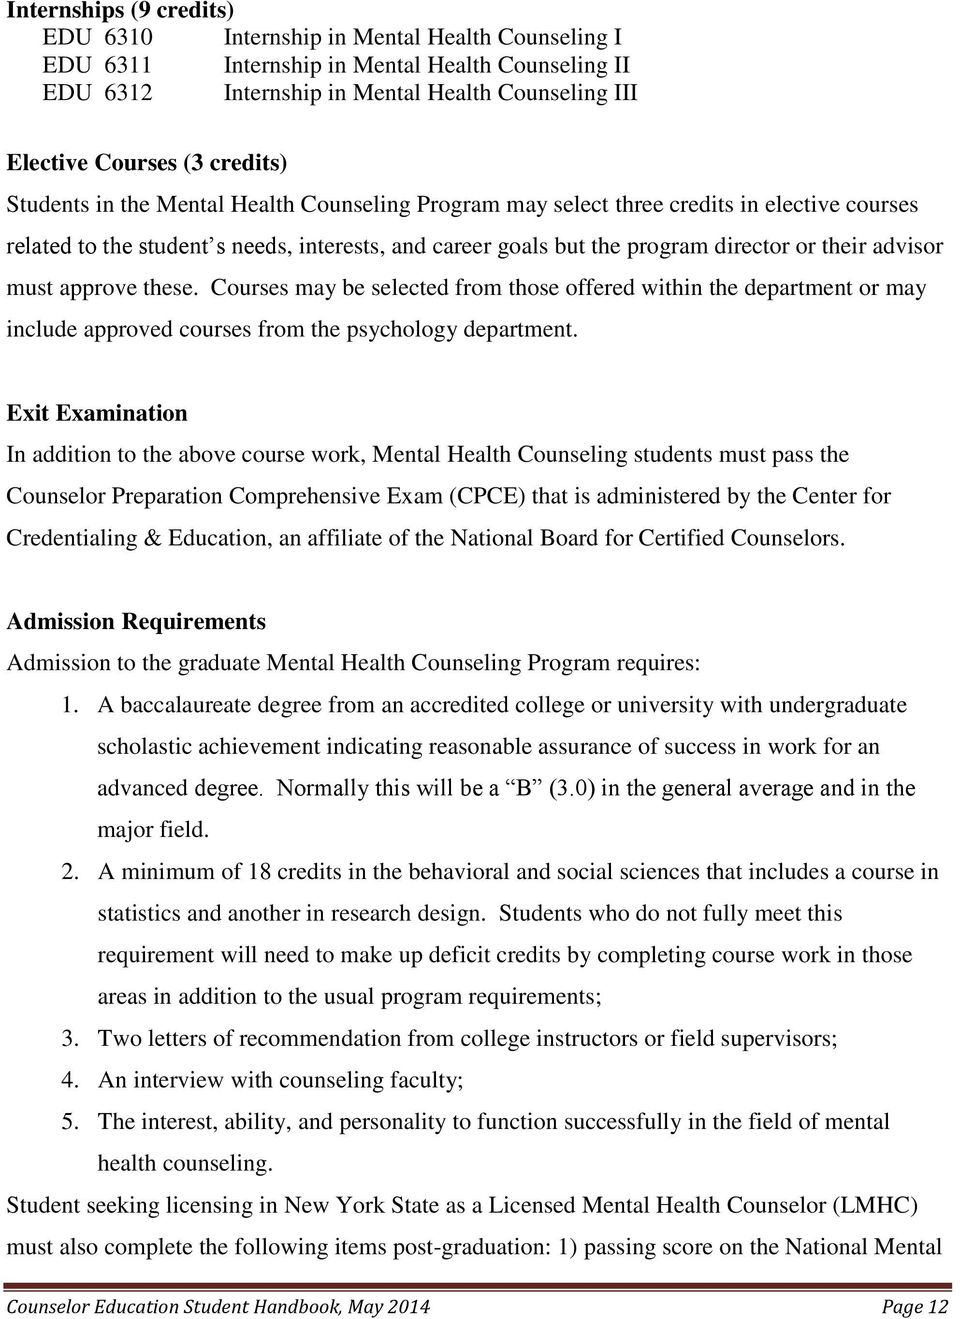 advisor must approve these. Courses may be selected from those offered within the department or may include approved courses from the psychology department.